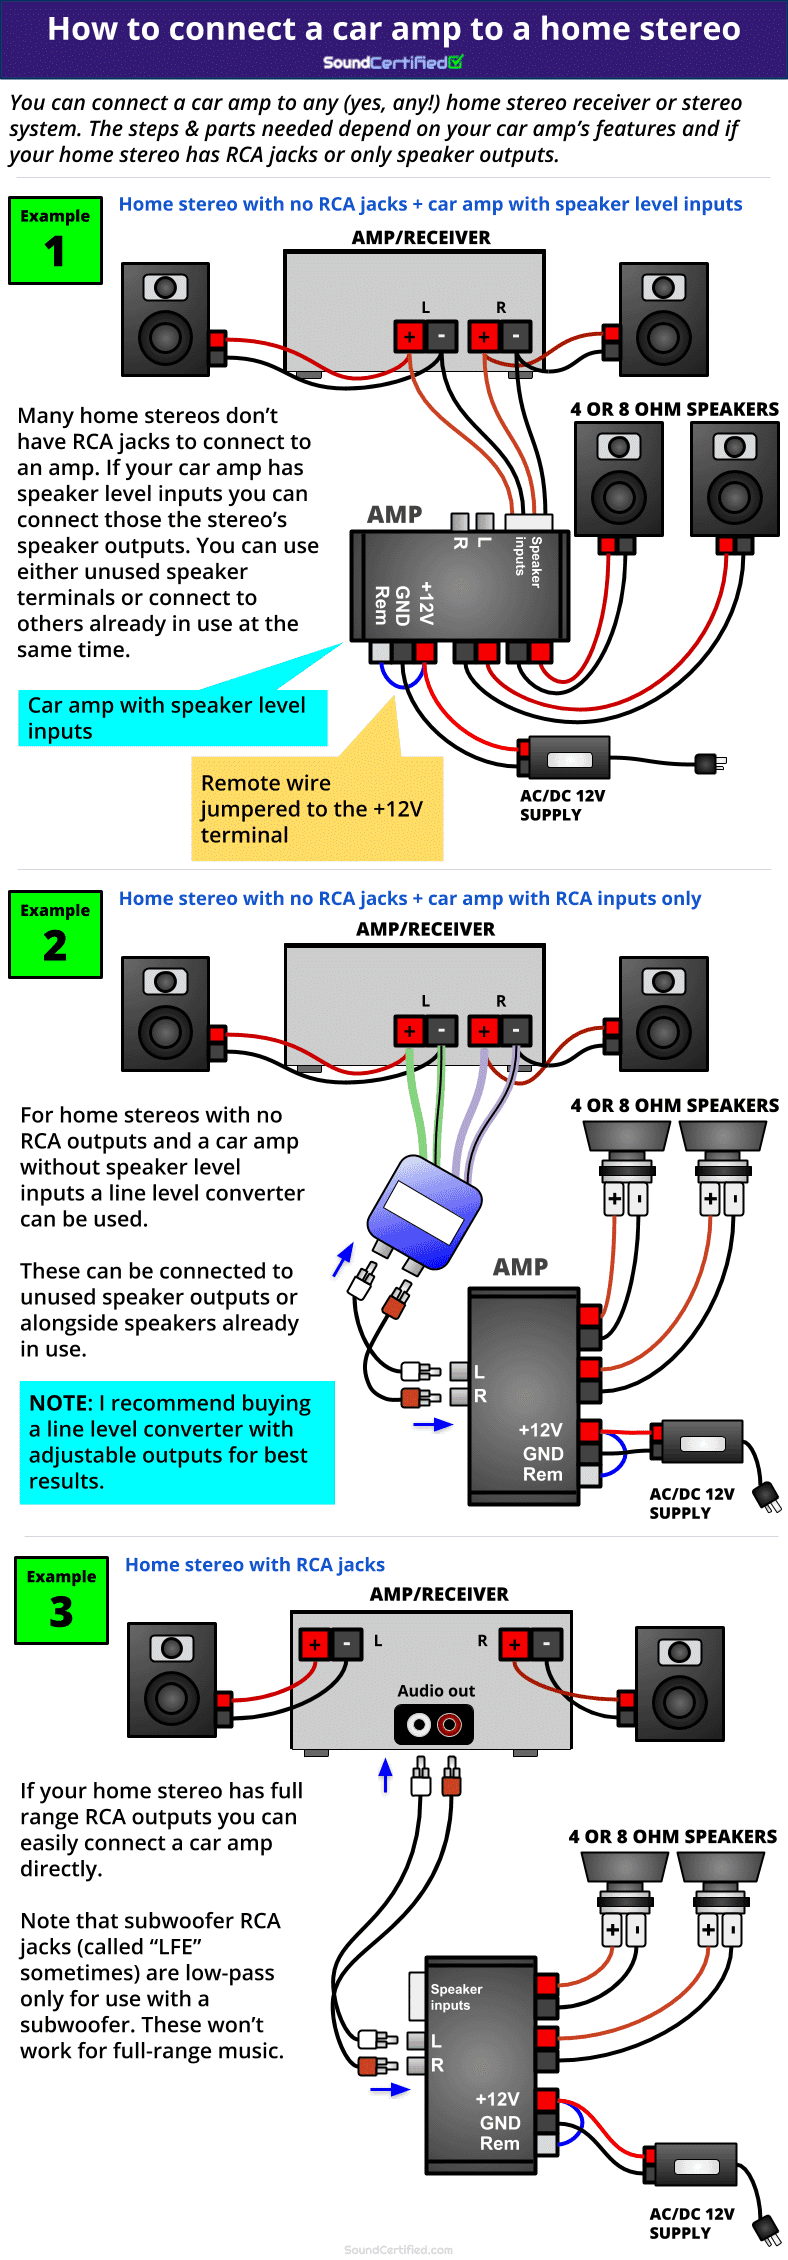 How to connect a car amp to a home stereo diagram